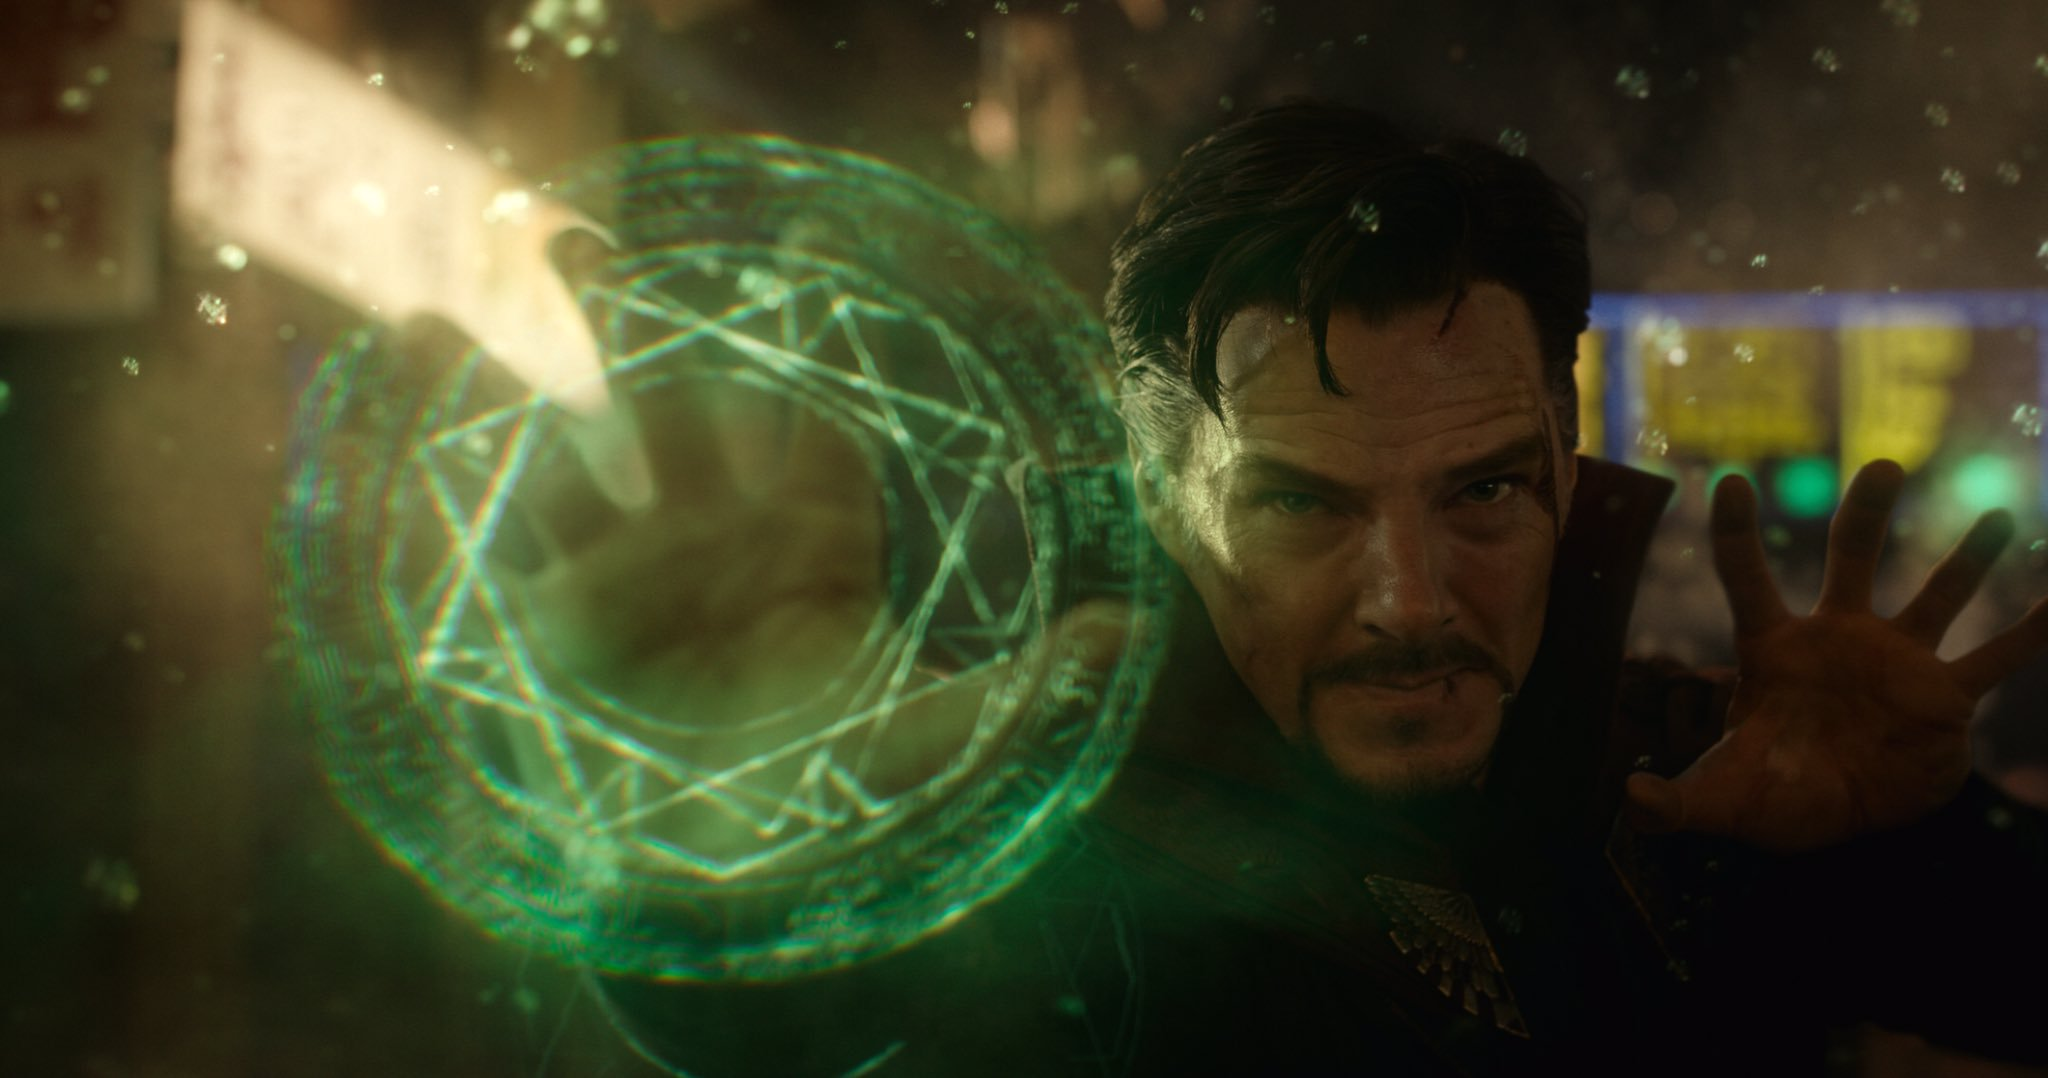 Marvel Studios president wants smaller, more intimate movies after Infinity War